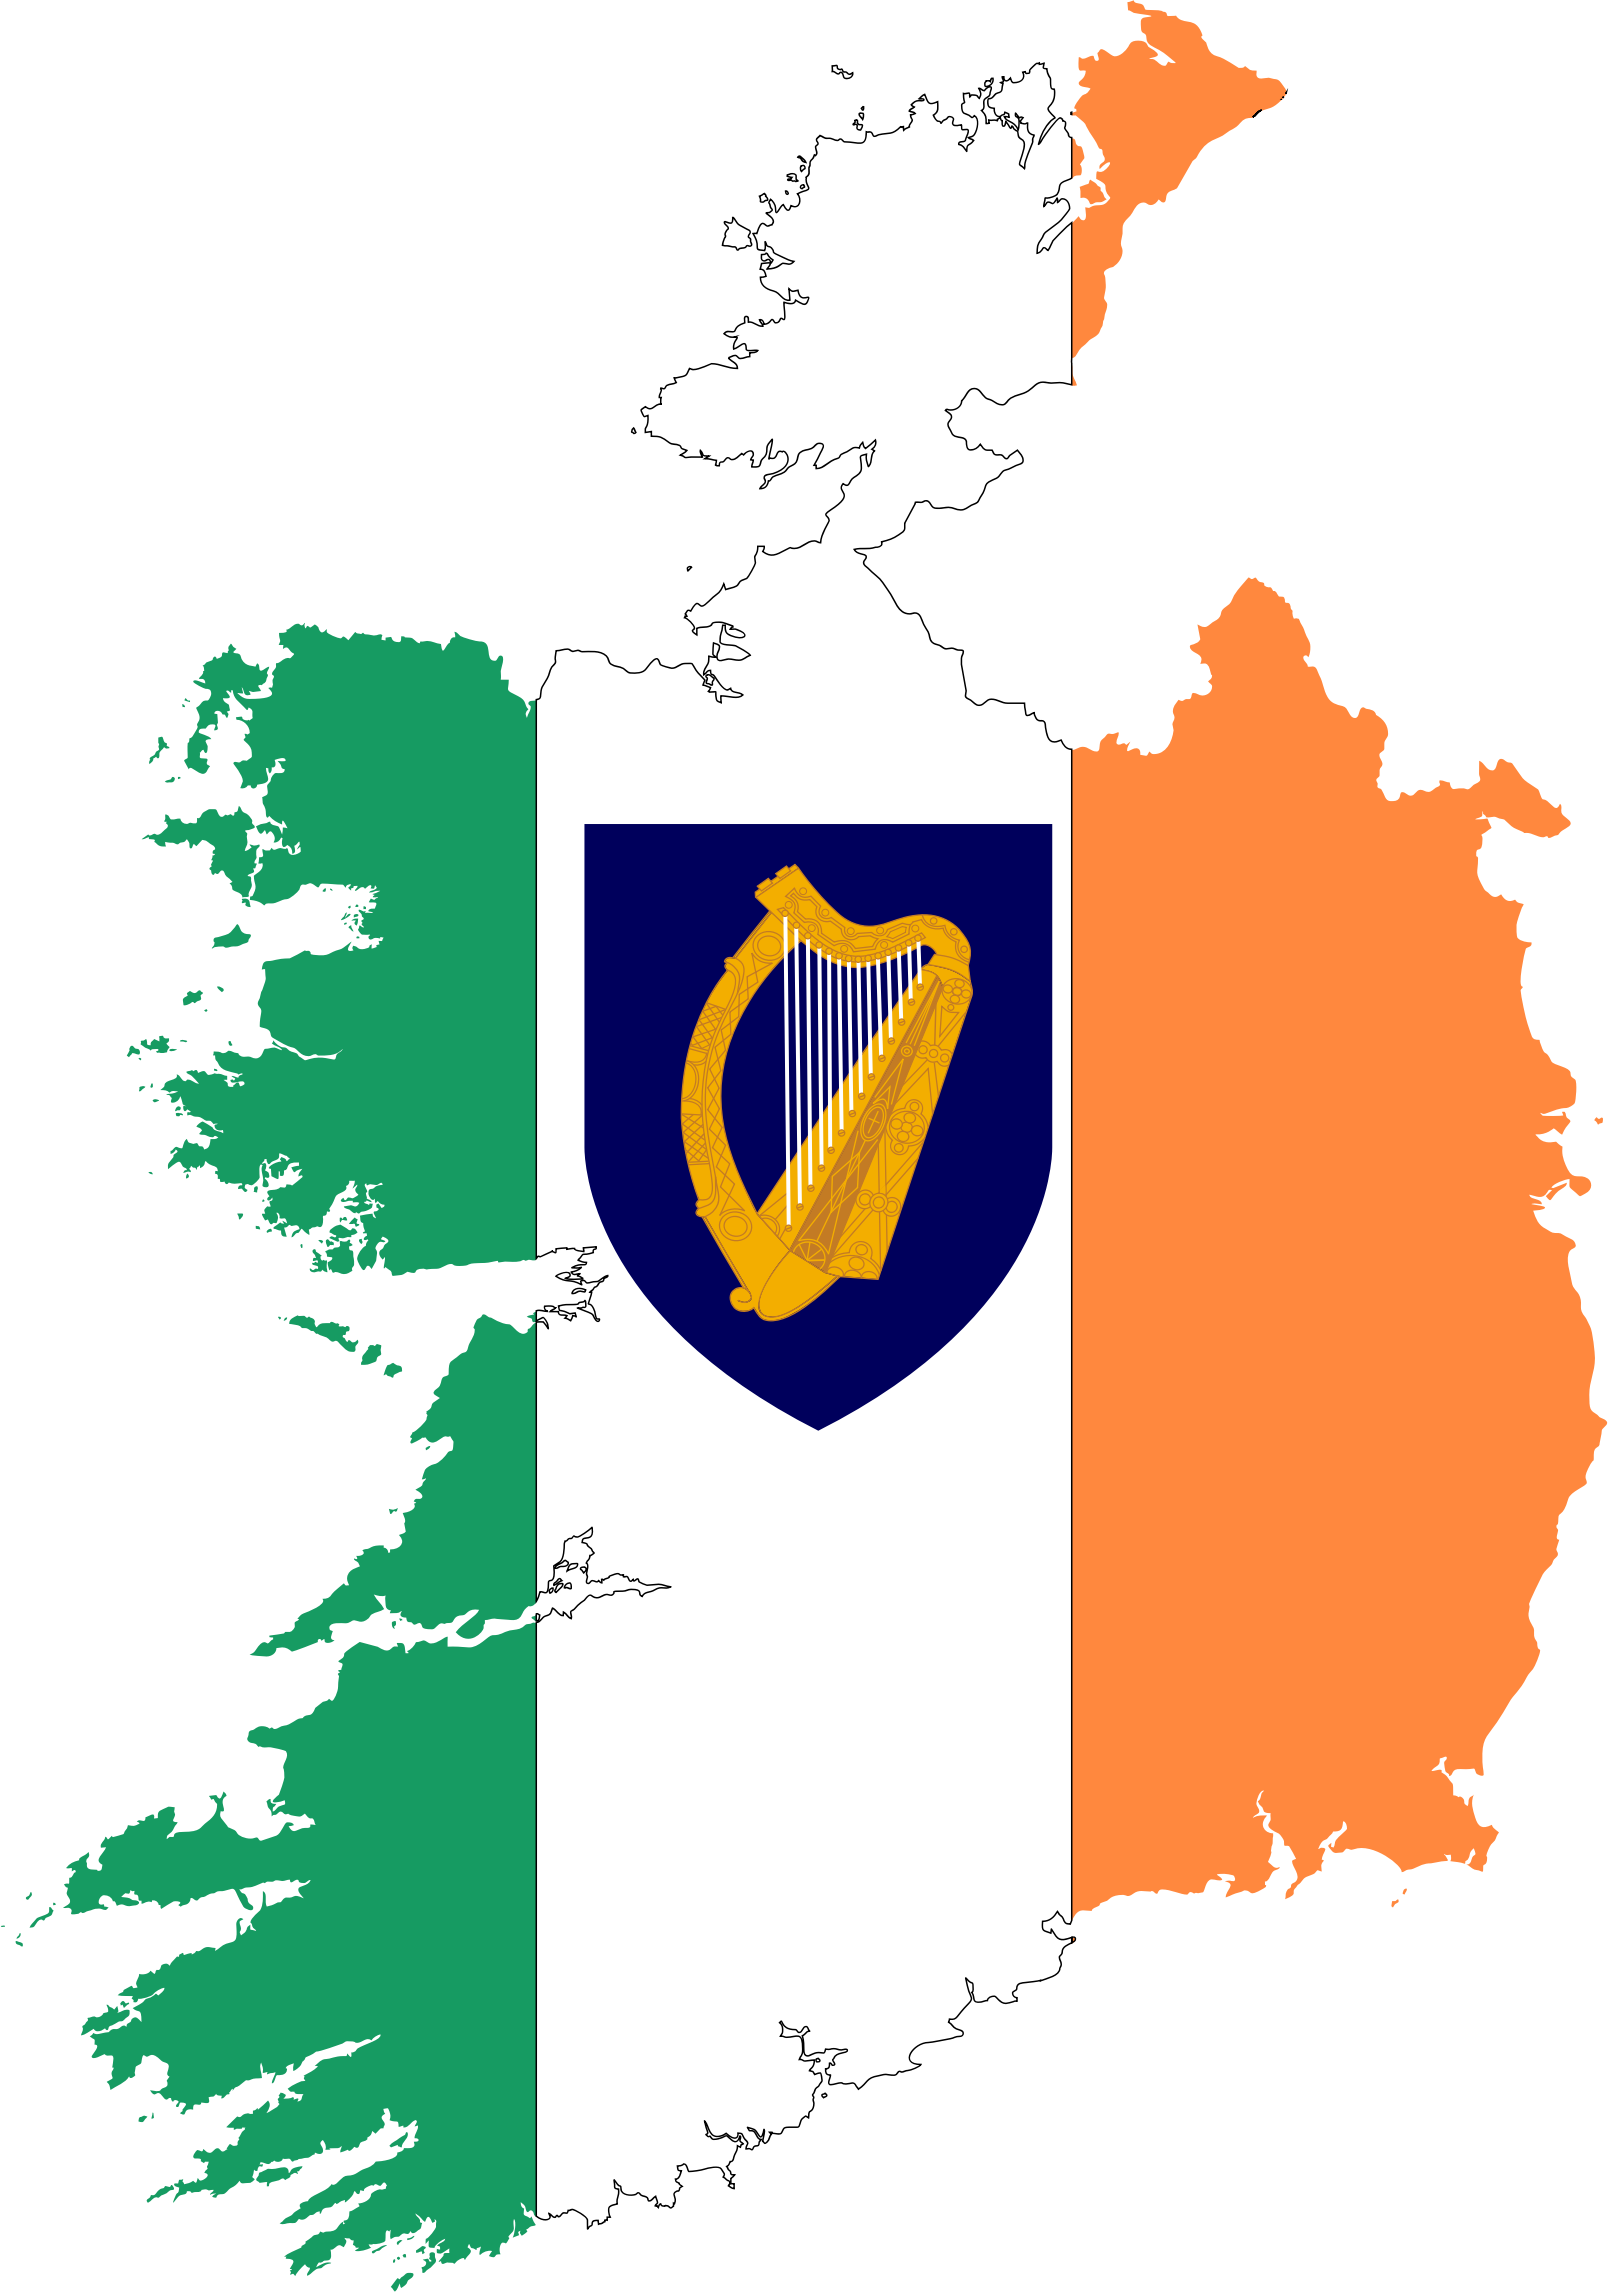 Republic Of Ireland Map Flag With Coat Of Arms by GDJ